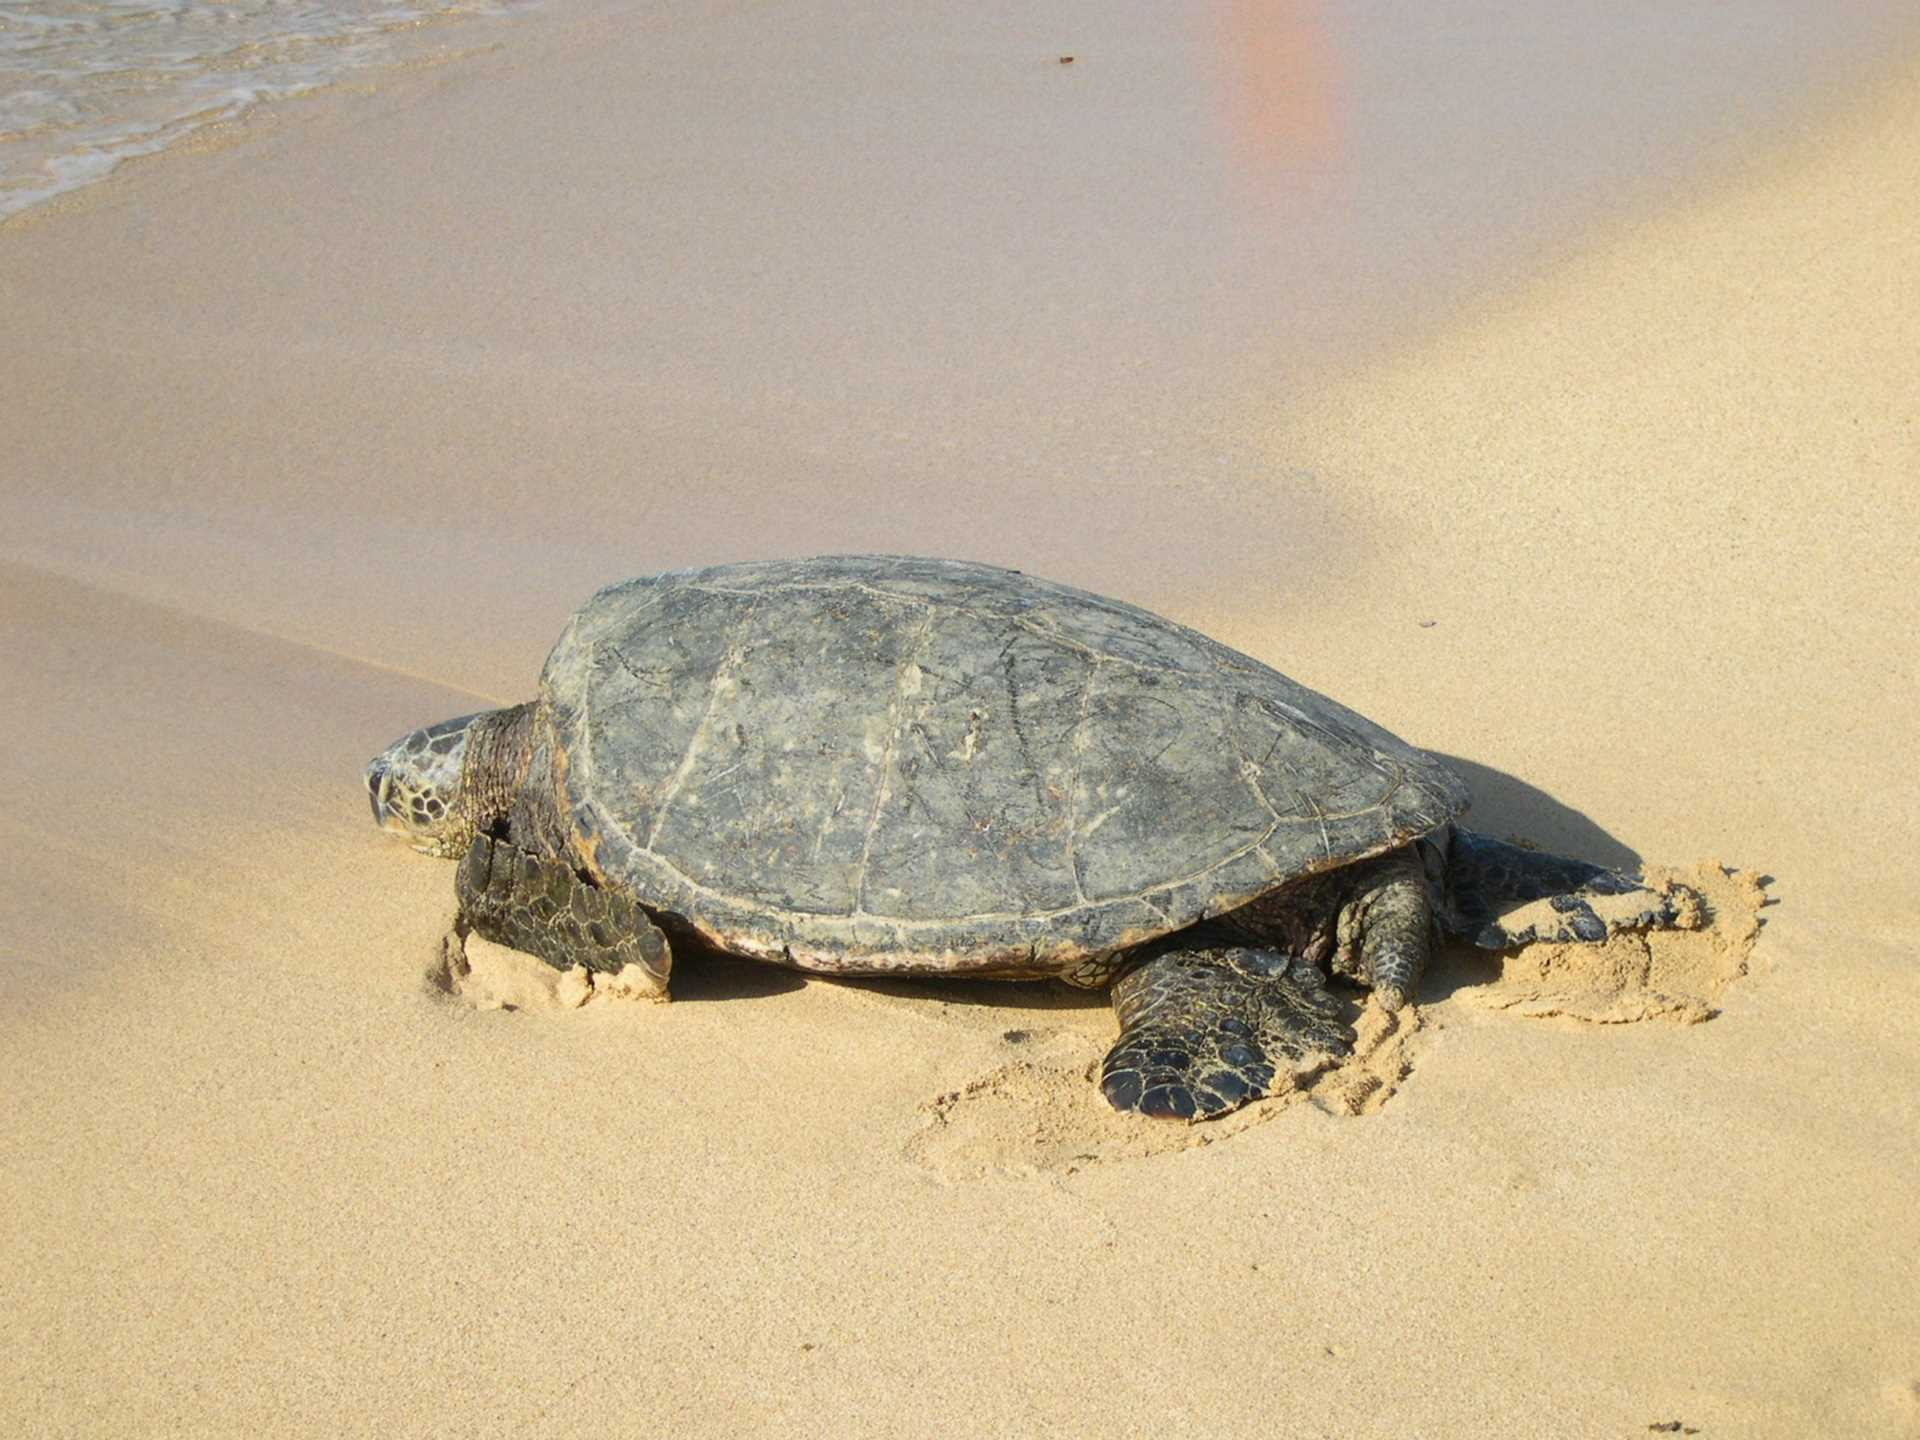 Friendly visitor often seen on local beaches